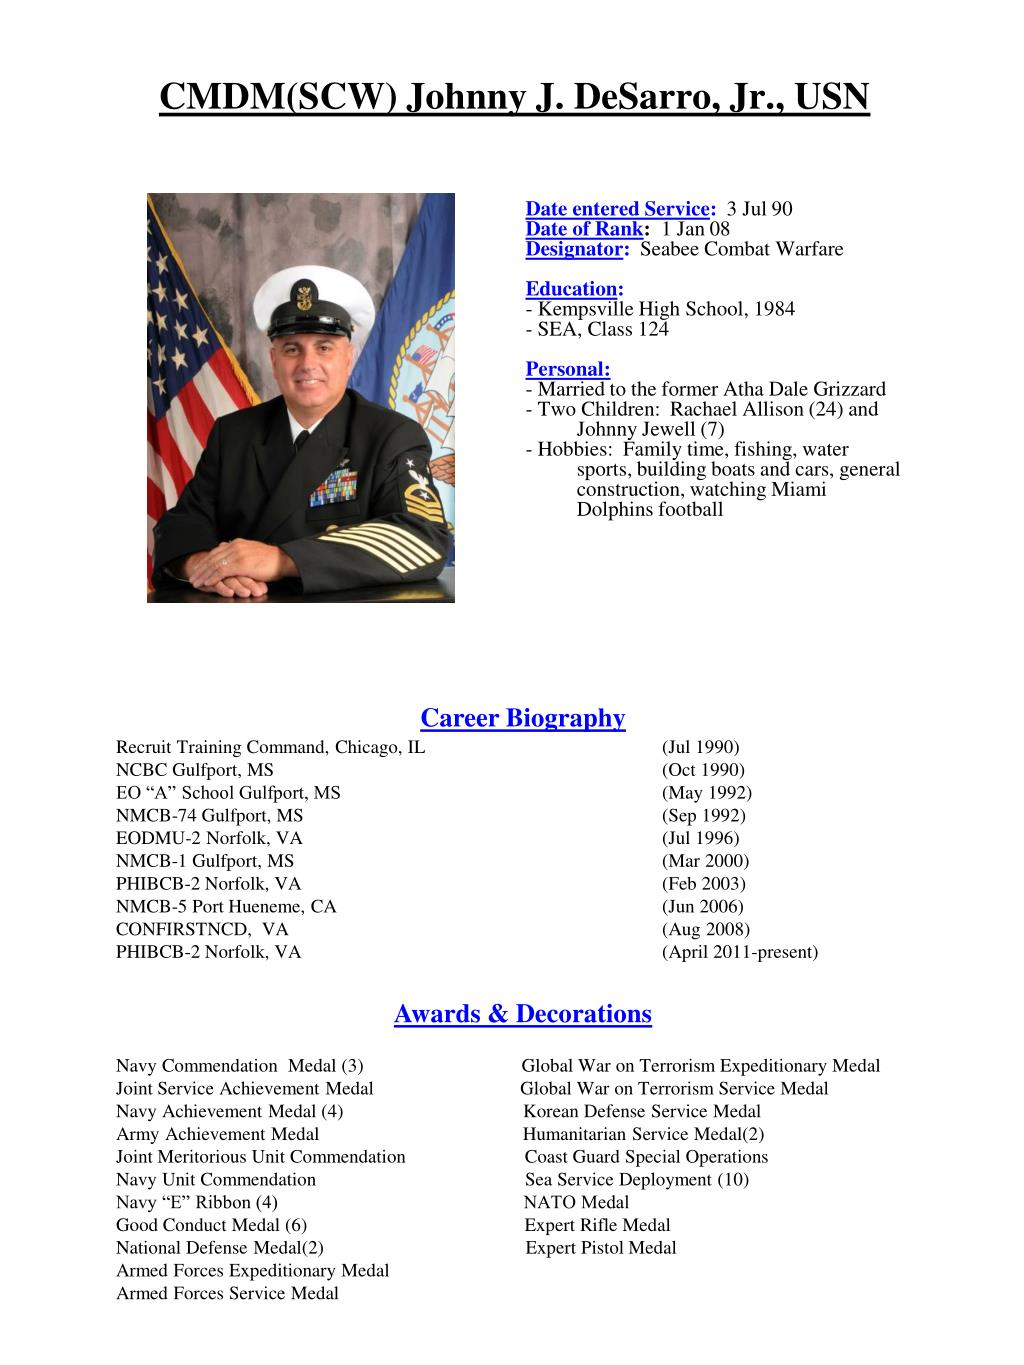 PPT - CMDM(SCW) Johnny J  DeSarro, Jr , USN PowerPoint